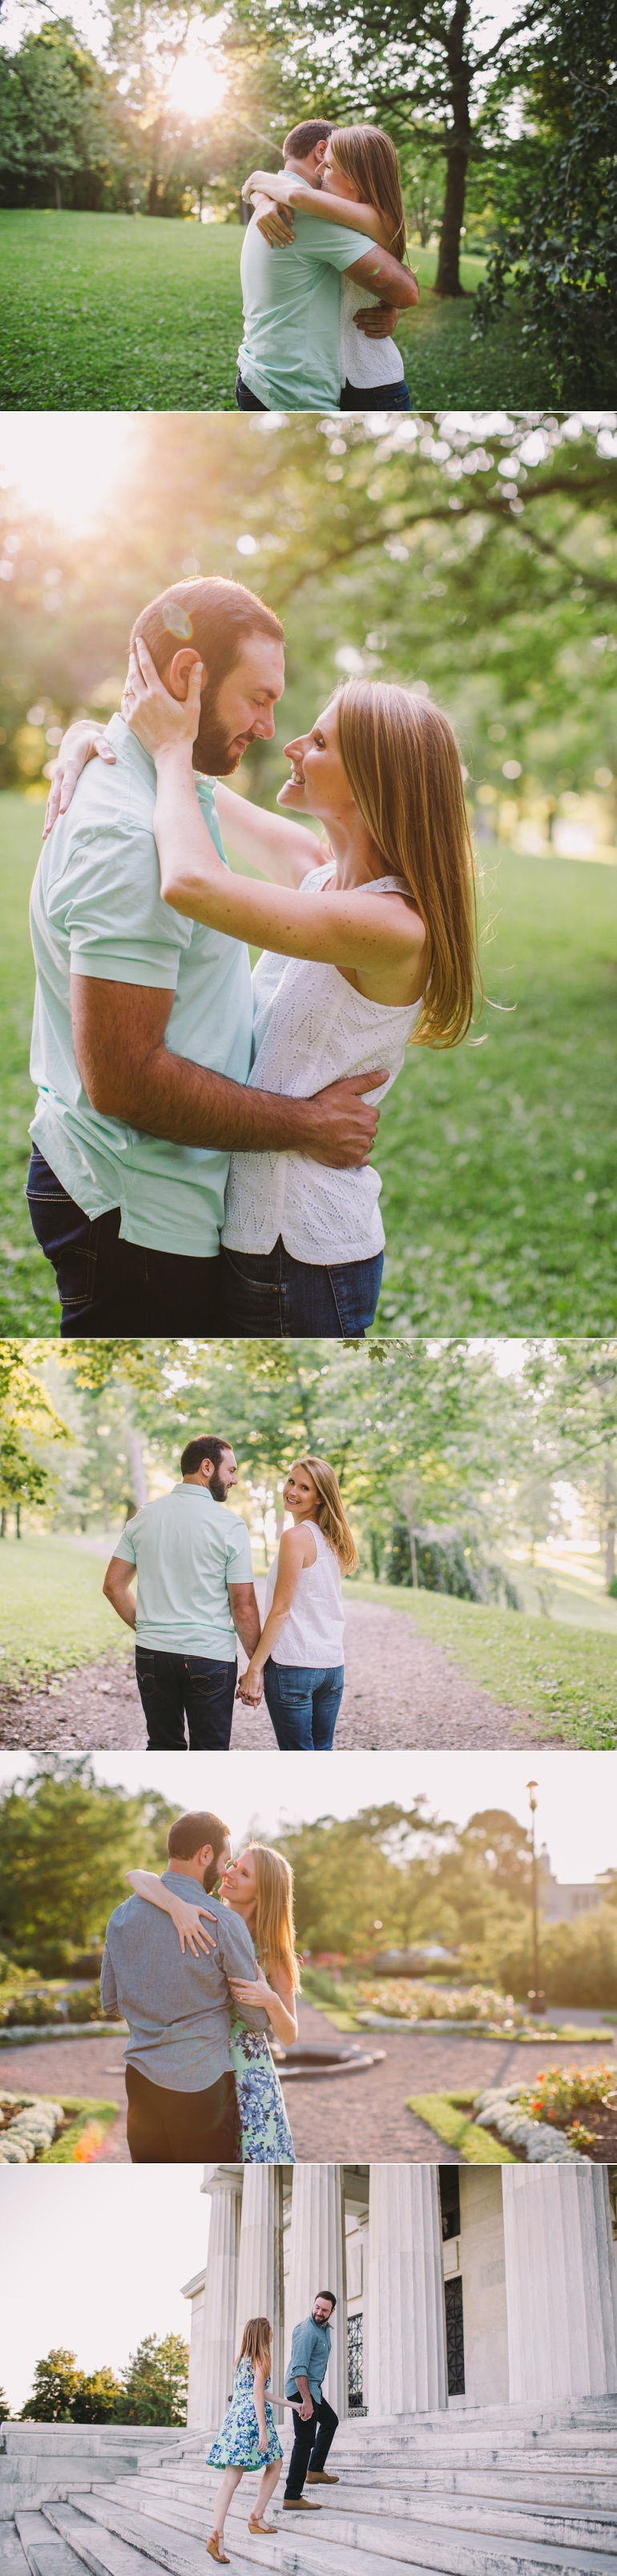 delware_park_buffalo_engagement_shoot_150715_0005